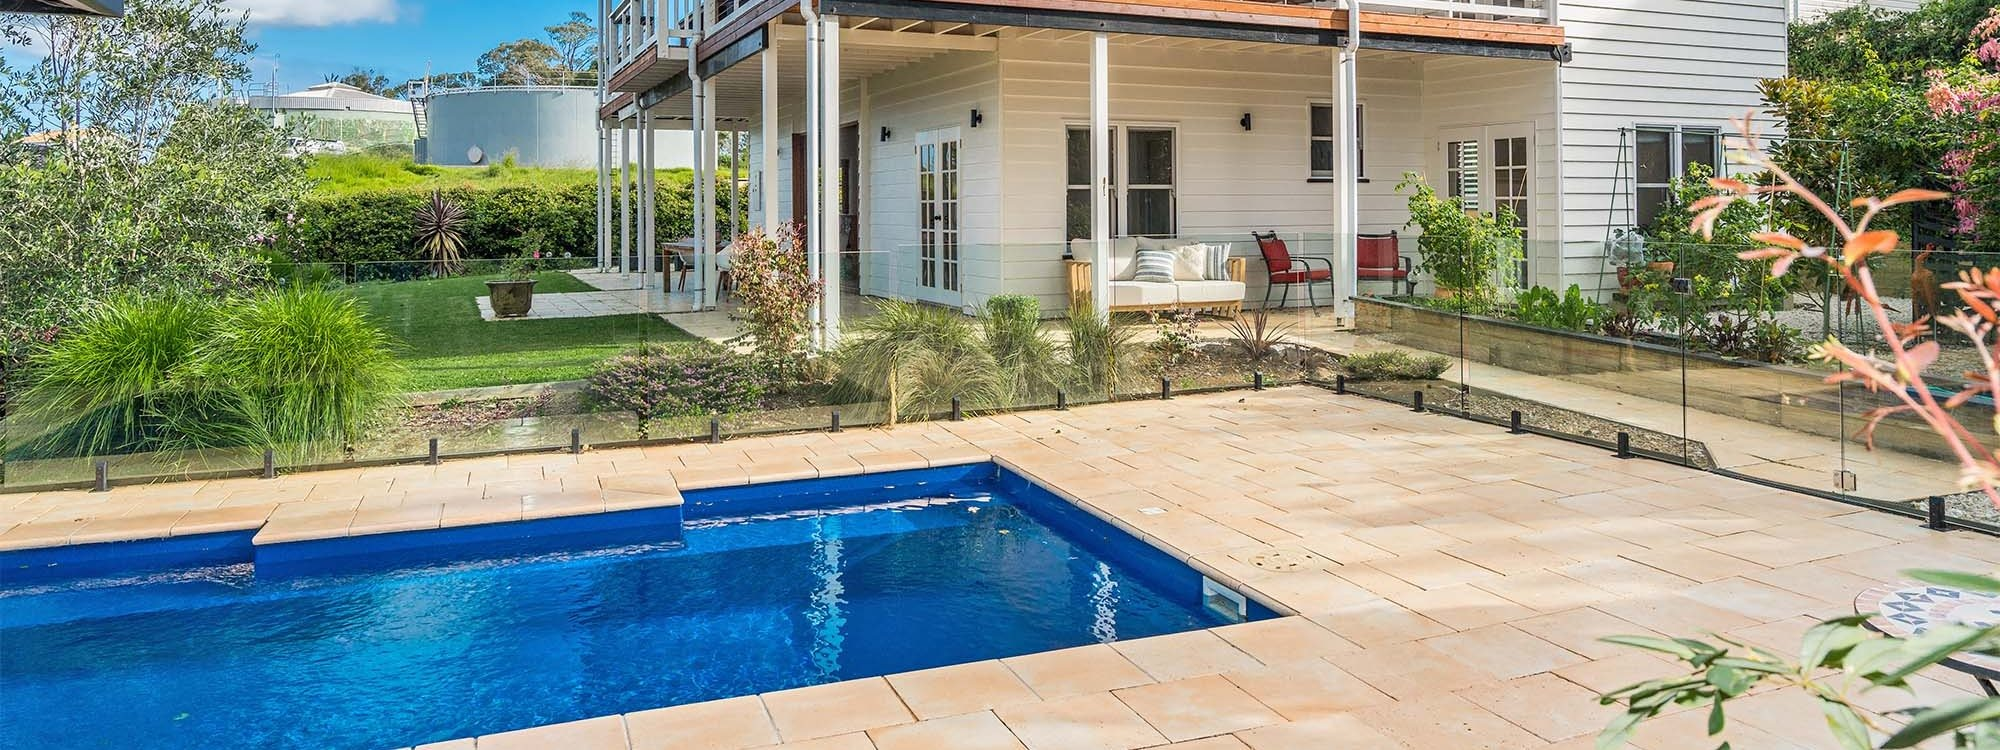 Serenade - Bangalow - Pool and House